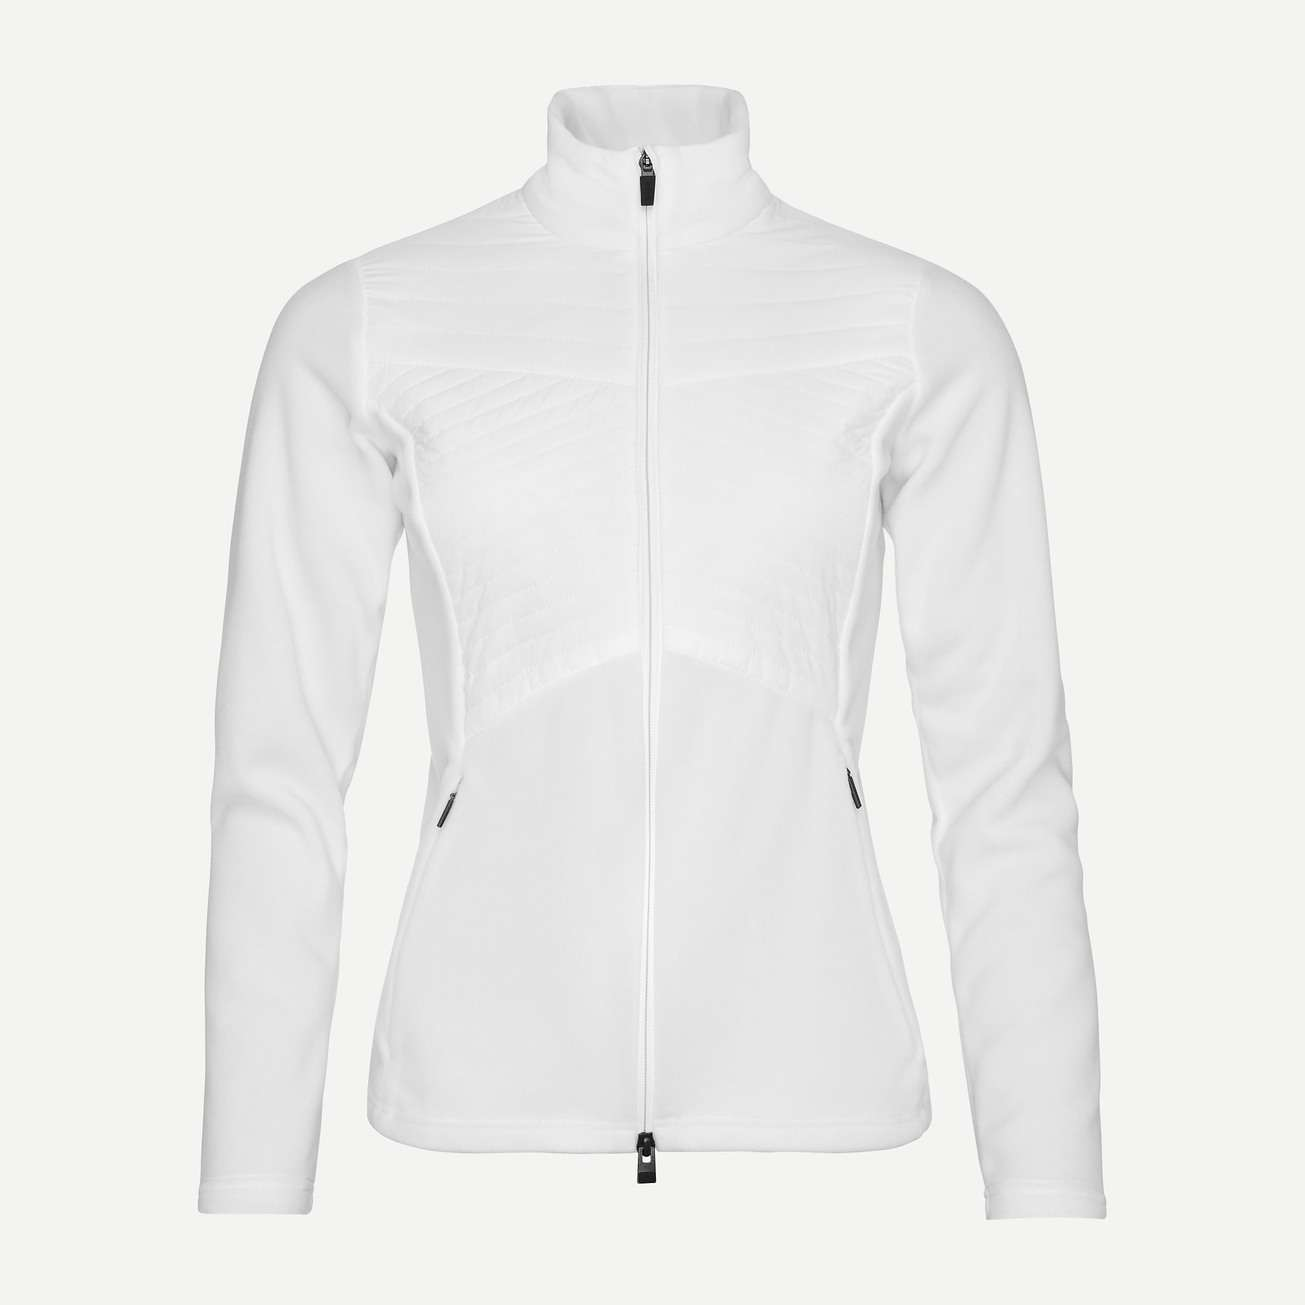 Kjus Scylla Midlayer Jacket£200 - This midlayer is my top pick because of its slim-lines,sleek aesthetic, colour pairing versatility and superior warmth with 3D quilting for exceptional insulation. You will look and feel chic, stylish and warm.